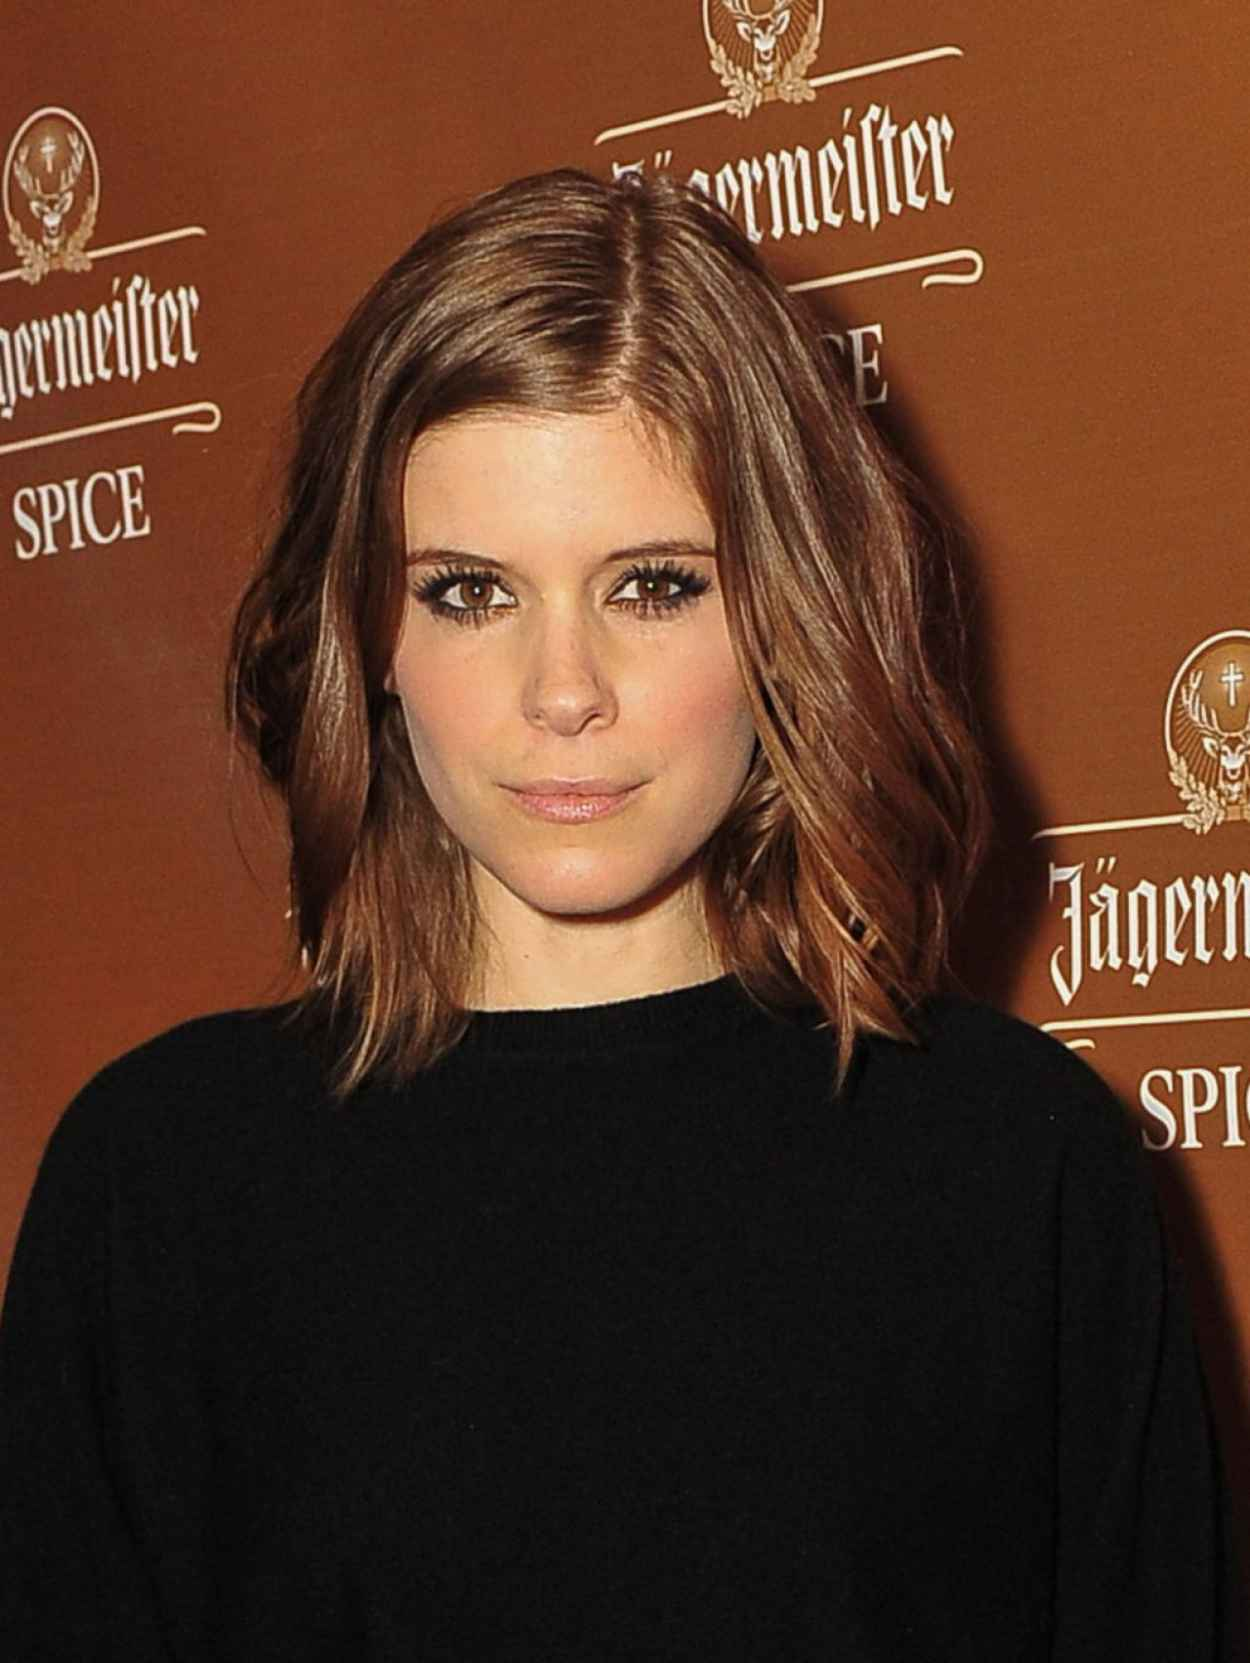 Kate Mara attends the Jagermeister Spice Launch in New York City.-1